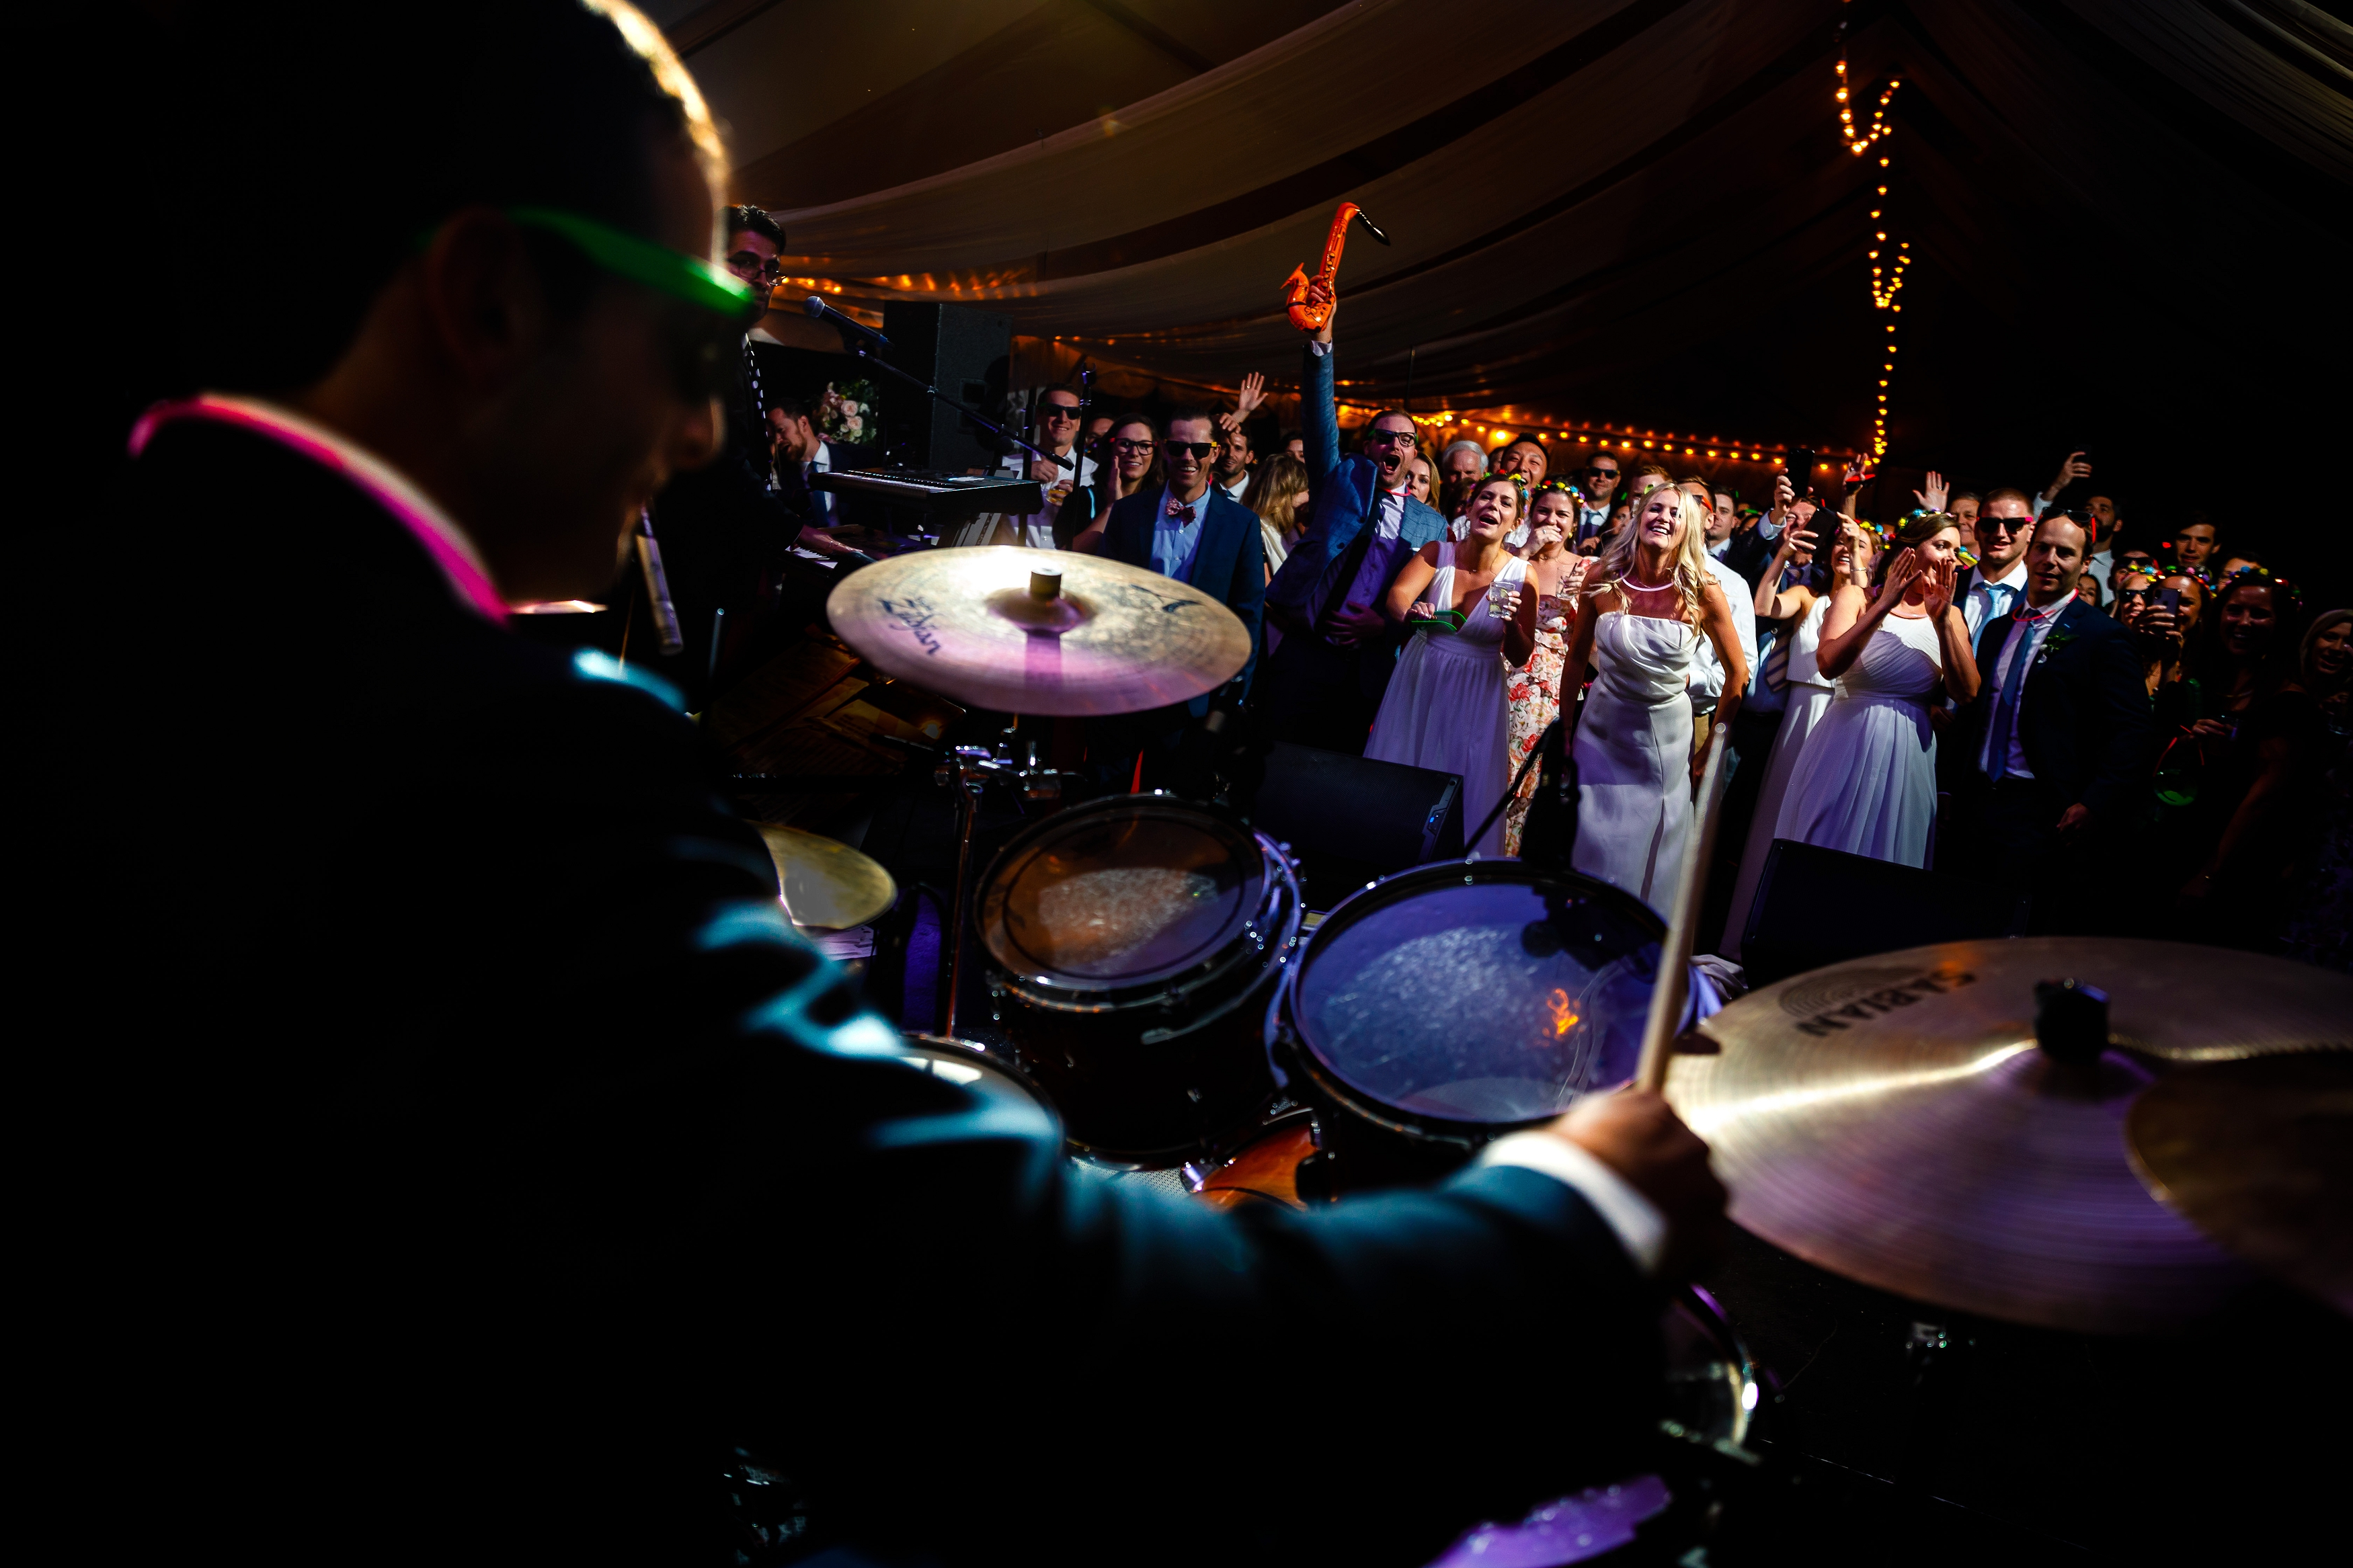 Groom playing the drums during the wedding reception at Camp Hale in Red Cliff, CO.